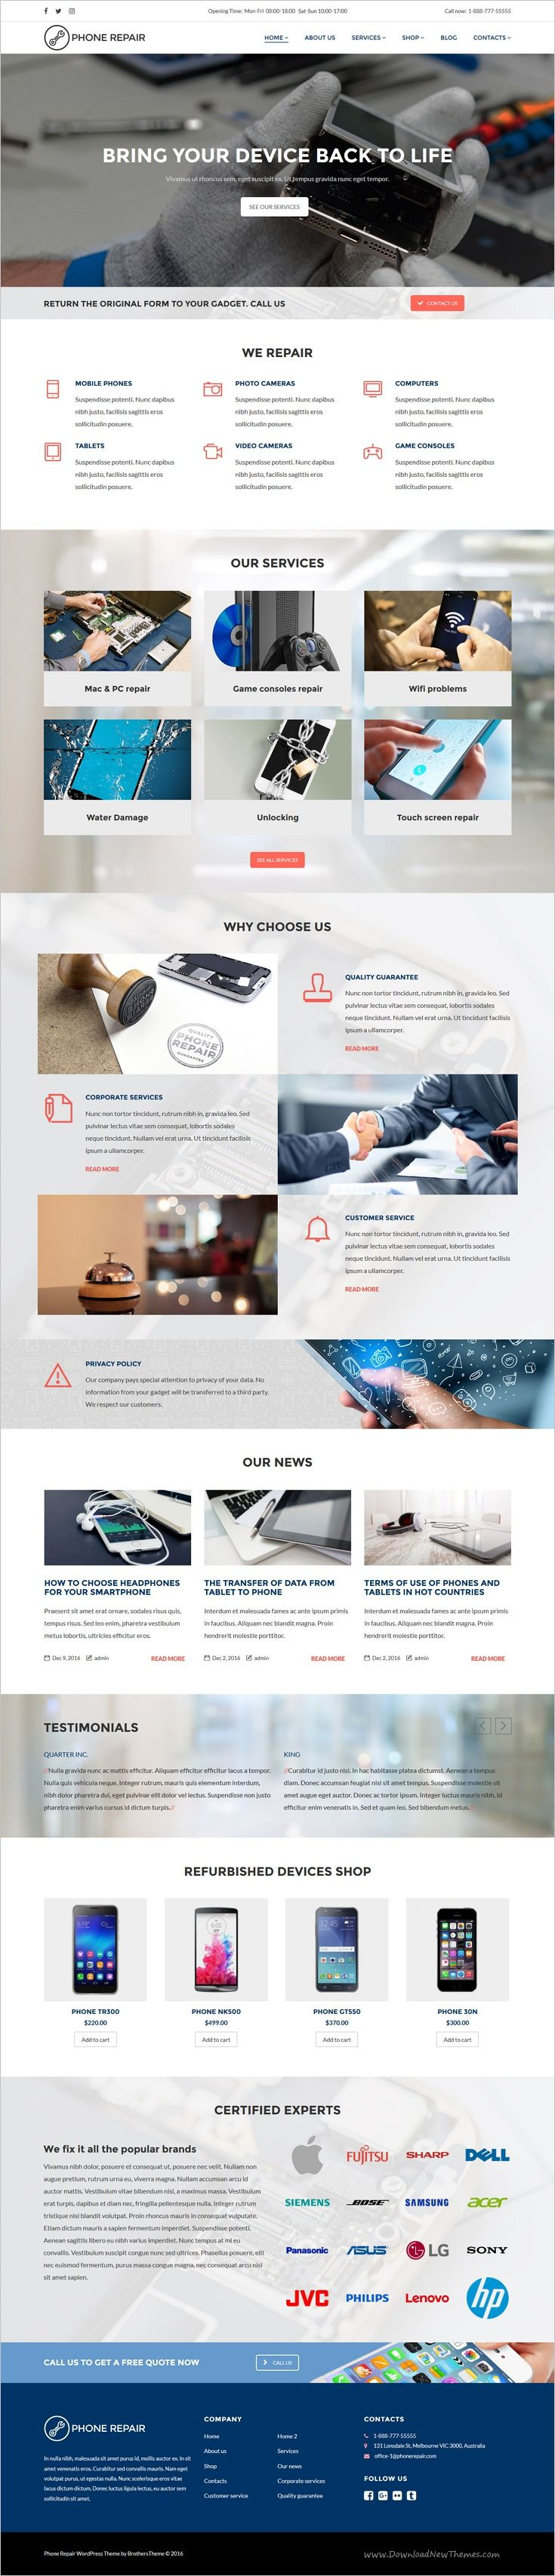 Phone #repair is a wonderful 2in1 responsive #WordPress theme for #websites of entrepreneurs working in the field of electronics repair services, and is ideal for smart phone, mobile device, computer and appliance repair shops download now➩ https://themeforest.net/item/phone-repair-mobile-cell-phone-and-computer-repair-business-wordpress-theme/19191980?ref=Datasata